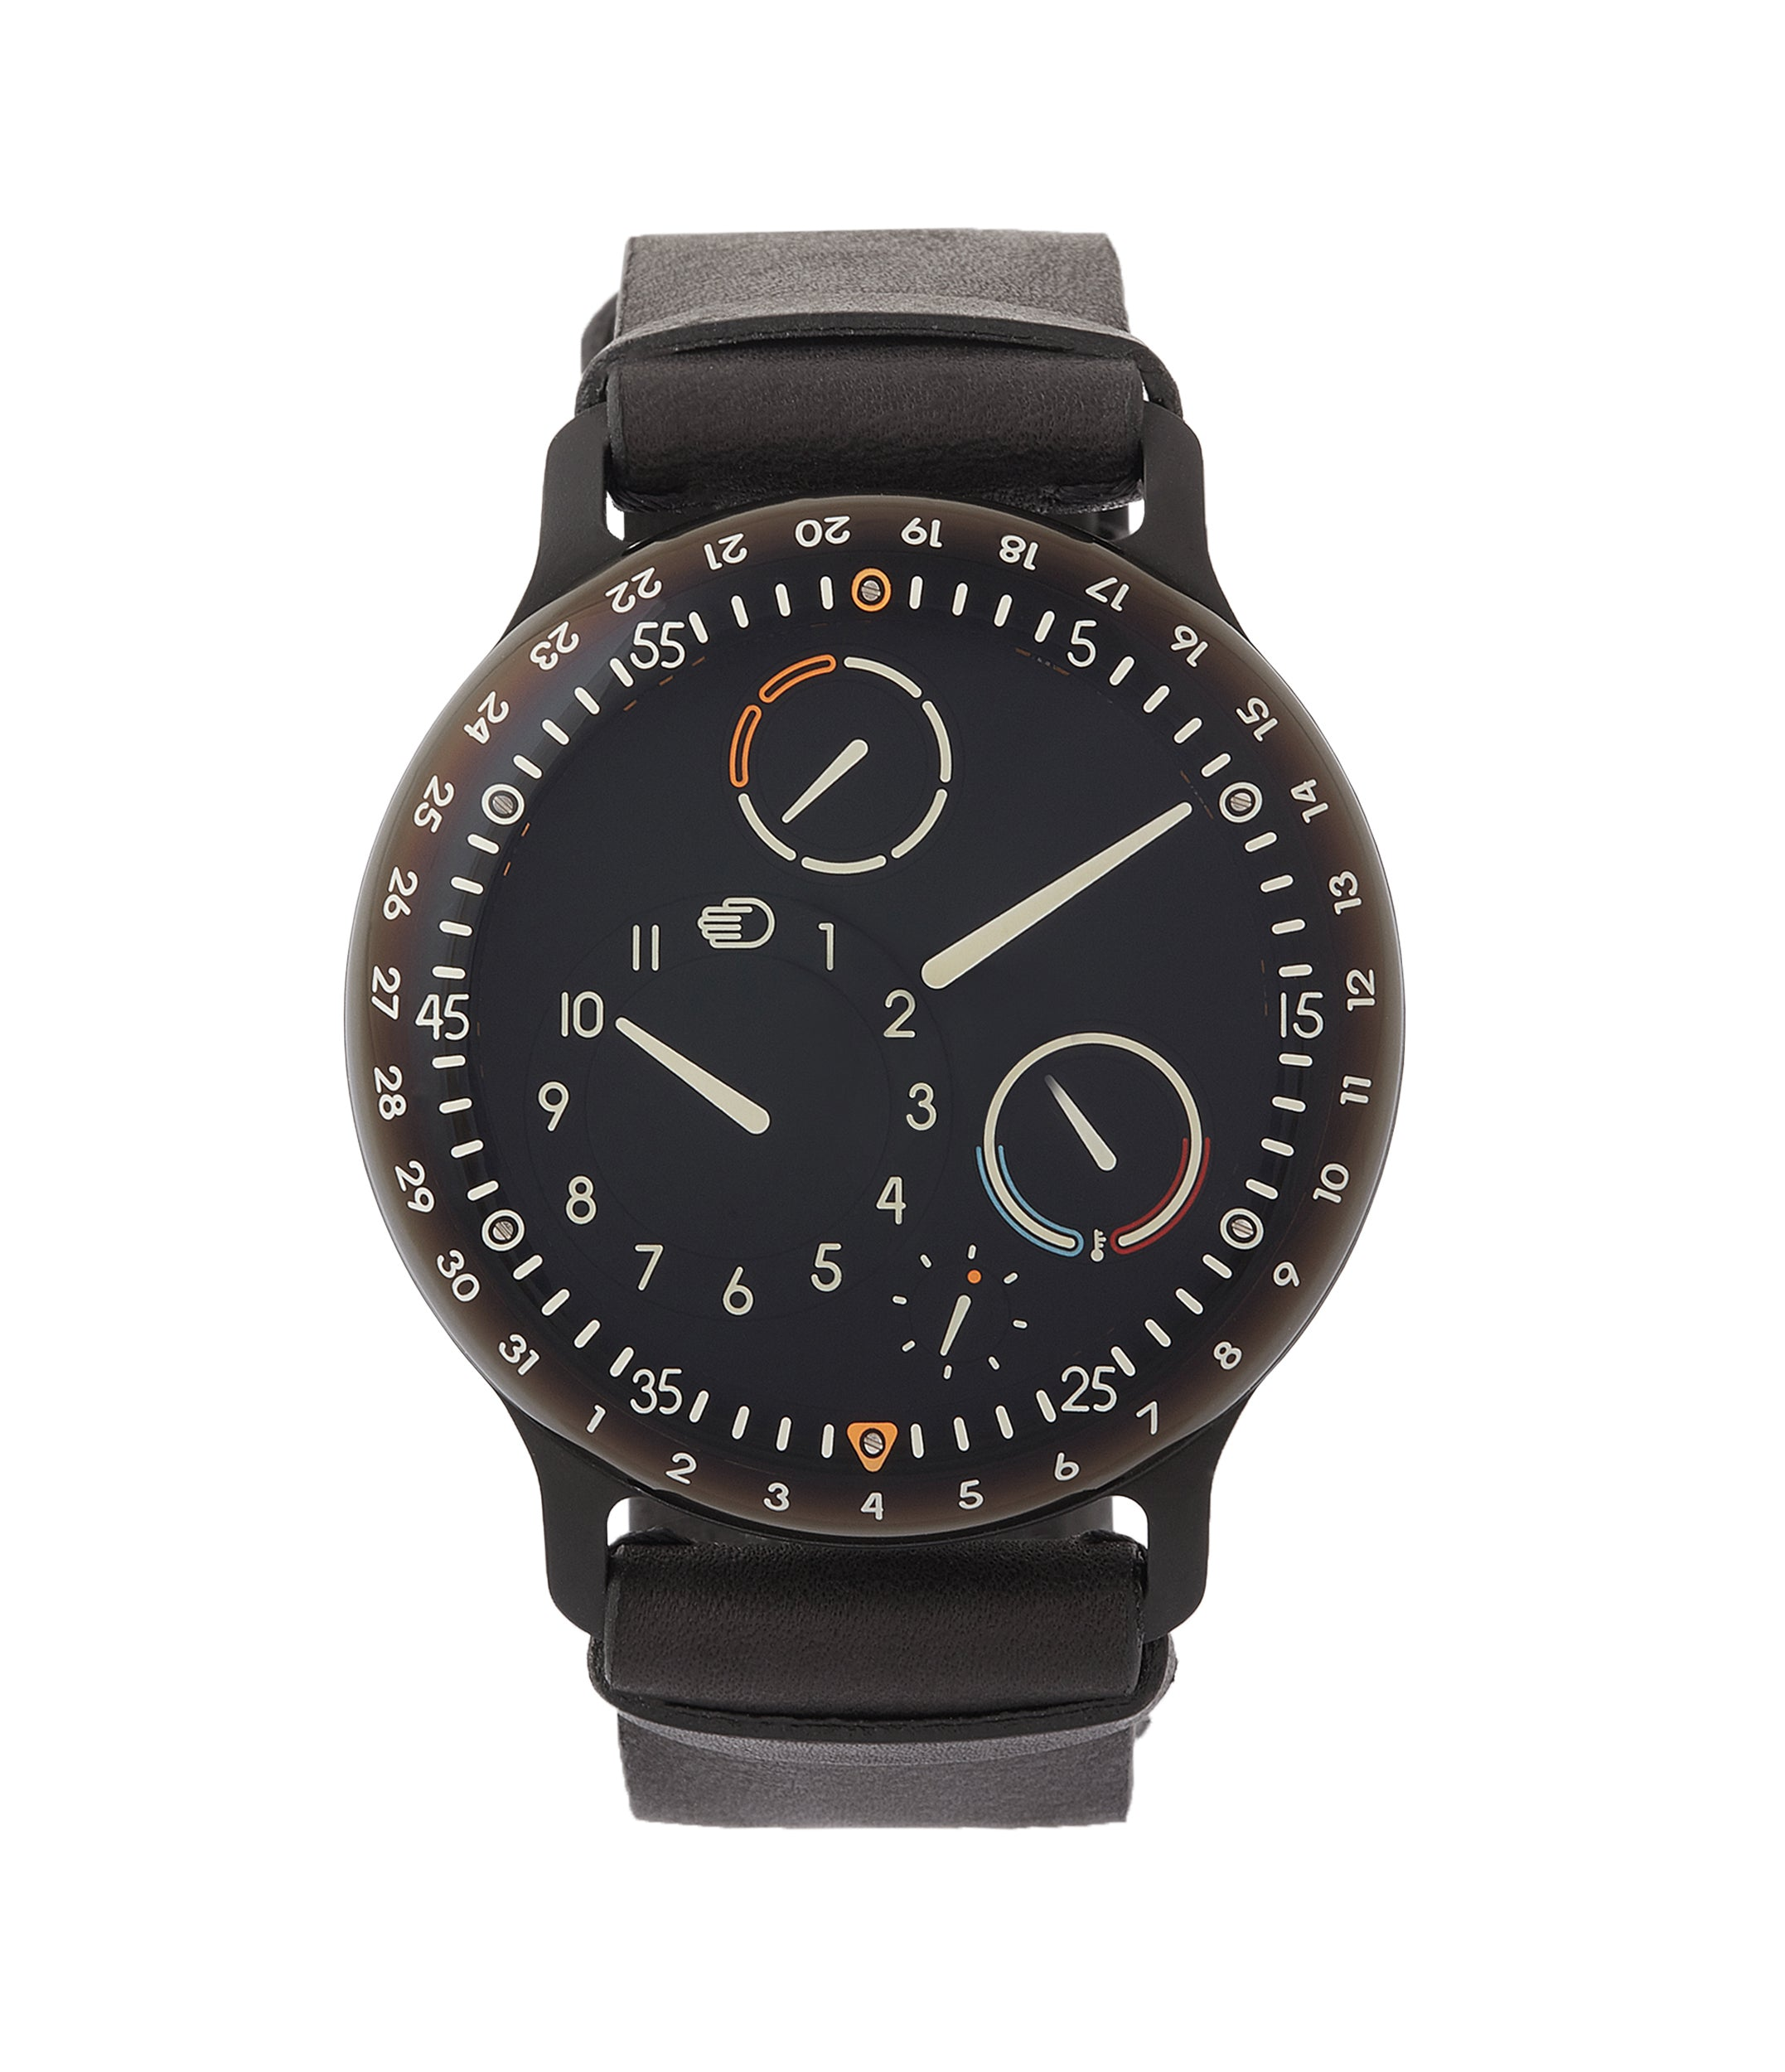 buy Ressence Type 3BB titanium oil-filled titanium luxury sports watch for sale at A Collected Man London UK specialist of rare watches